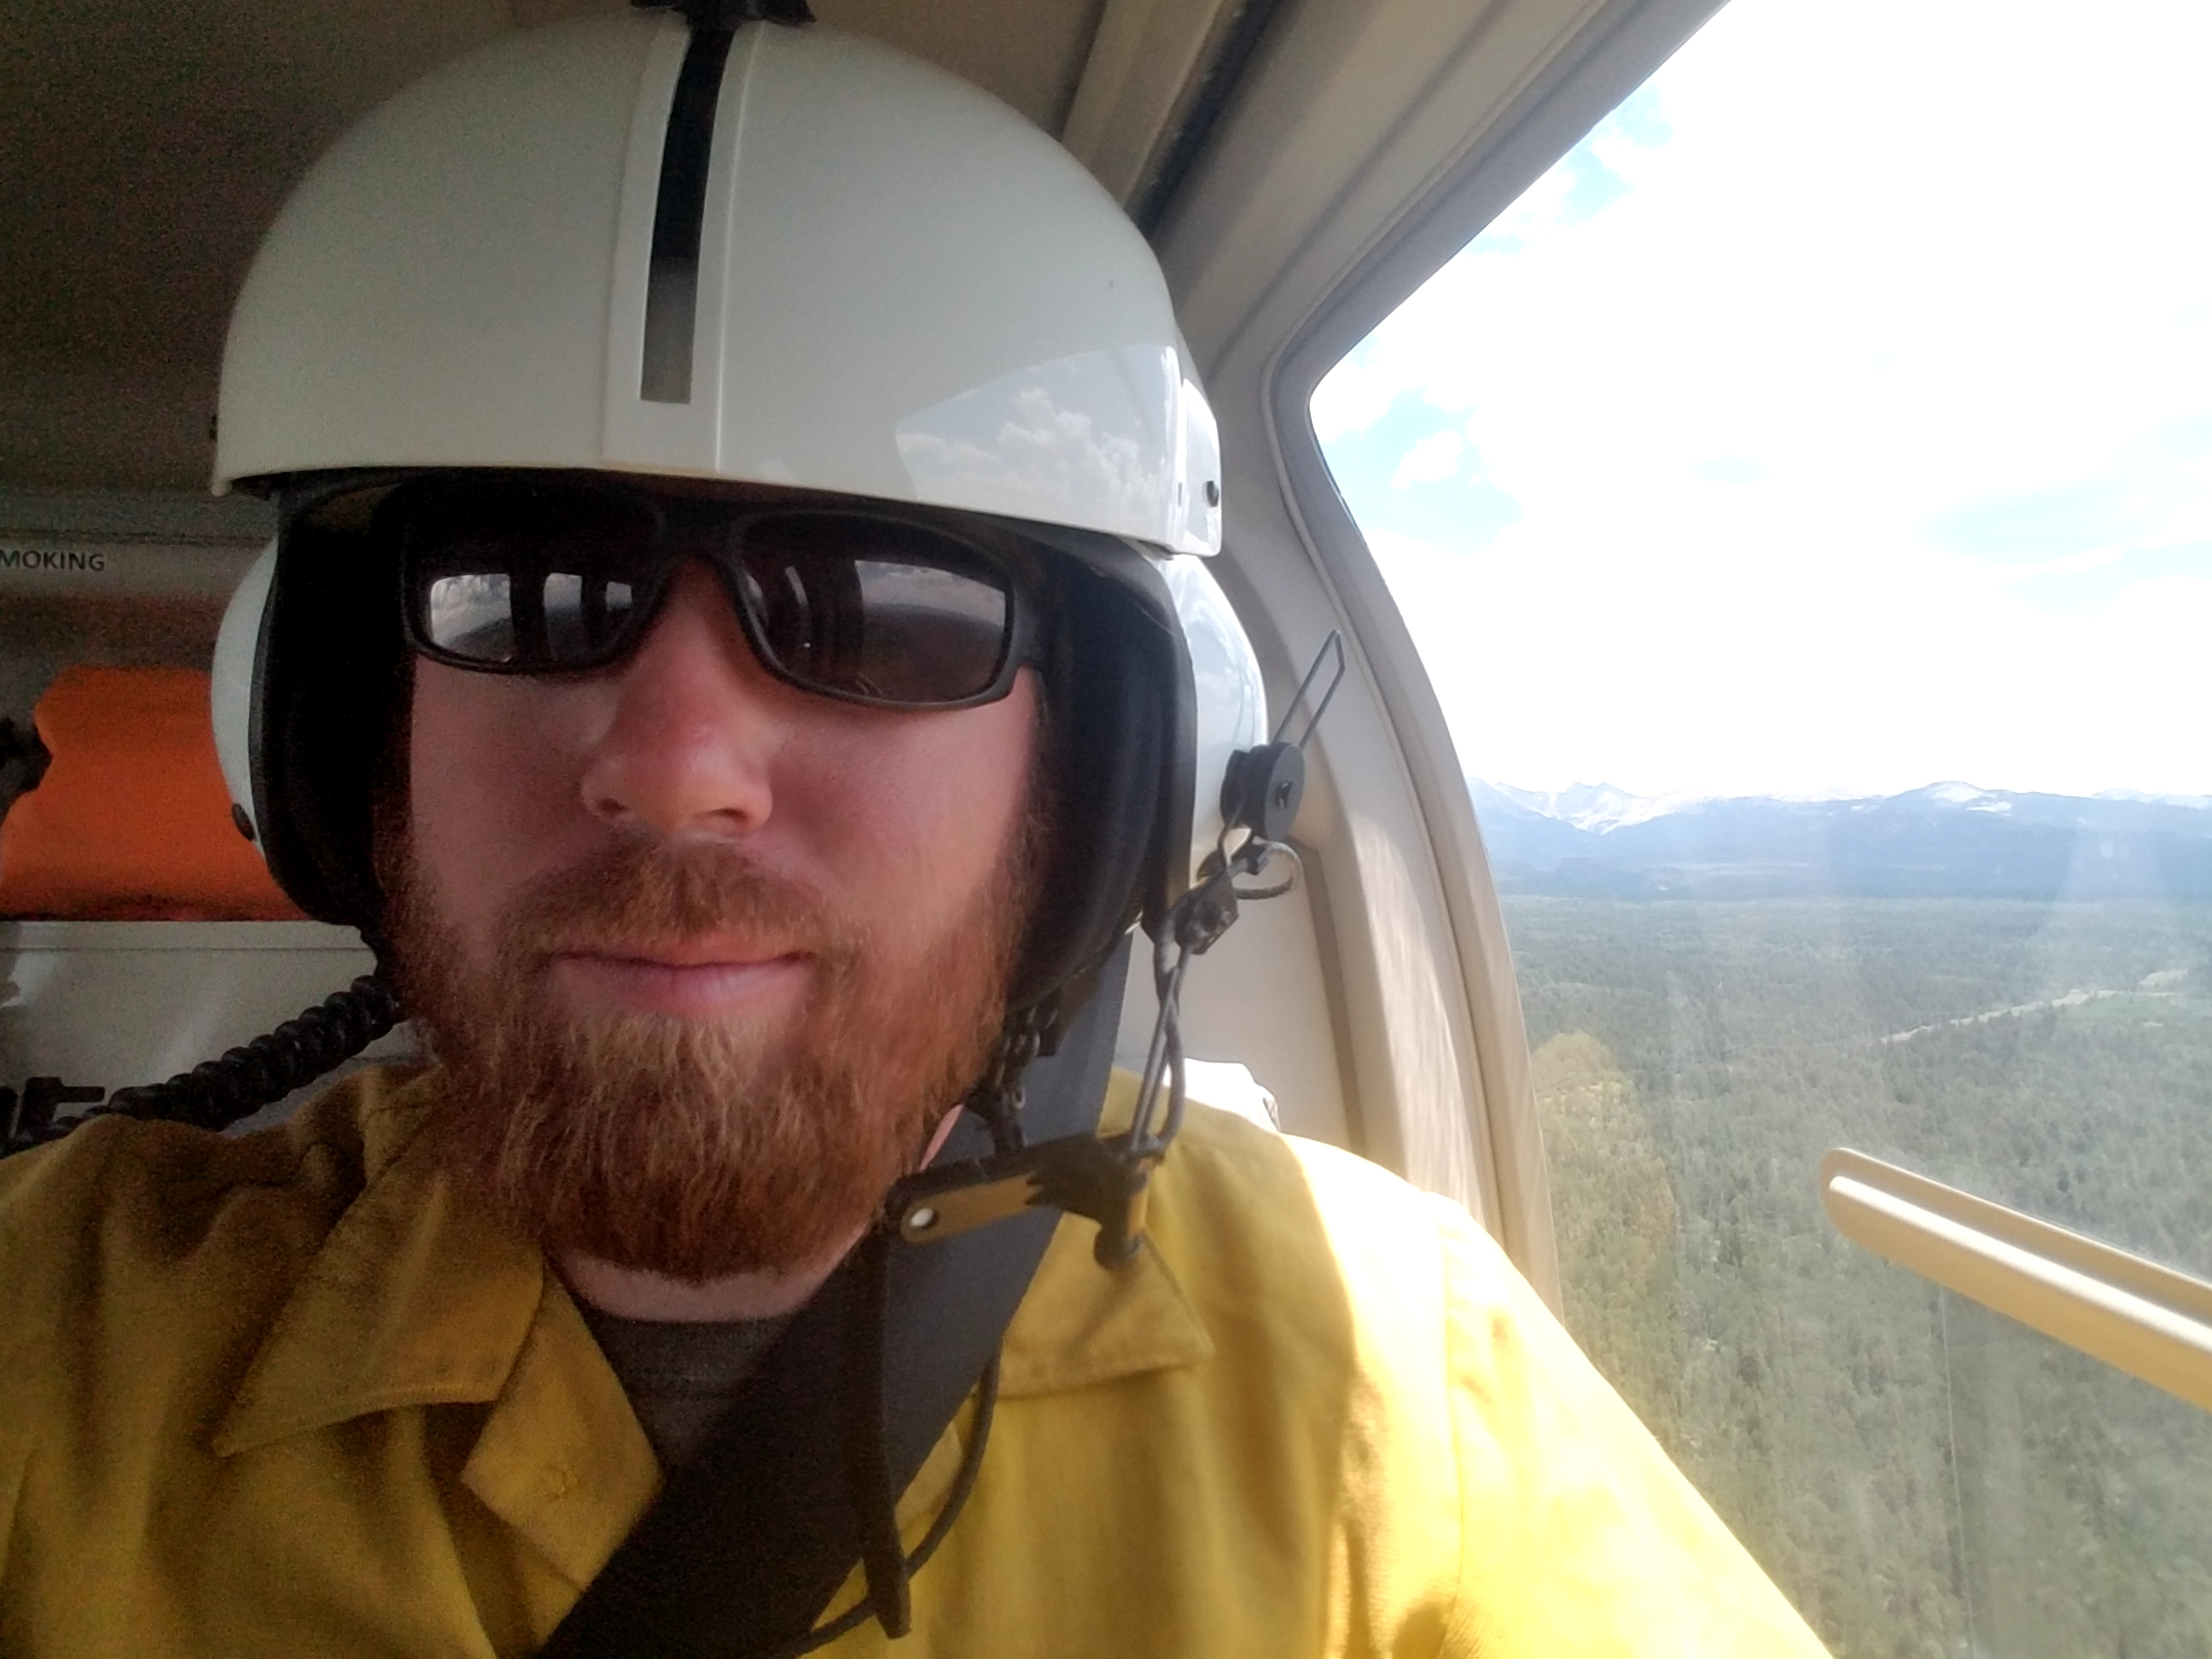 20180615_134345-jpg.43993_Firefighting in Colorado_Off the Road_Squat the Planet_6:42 PM